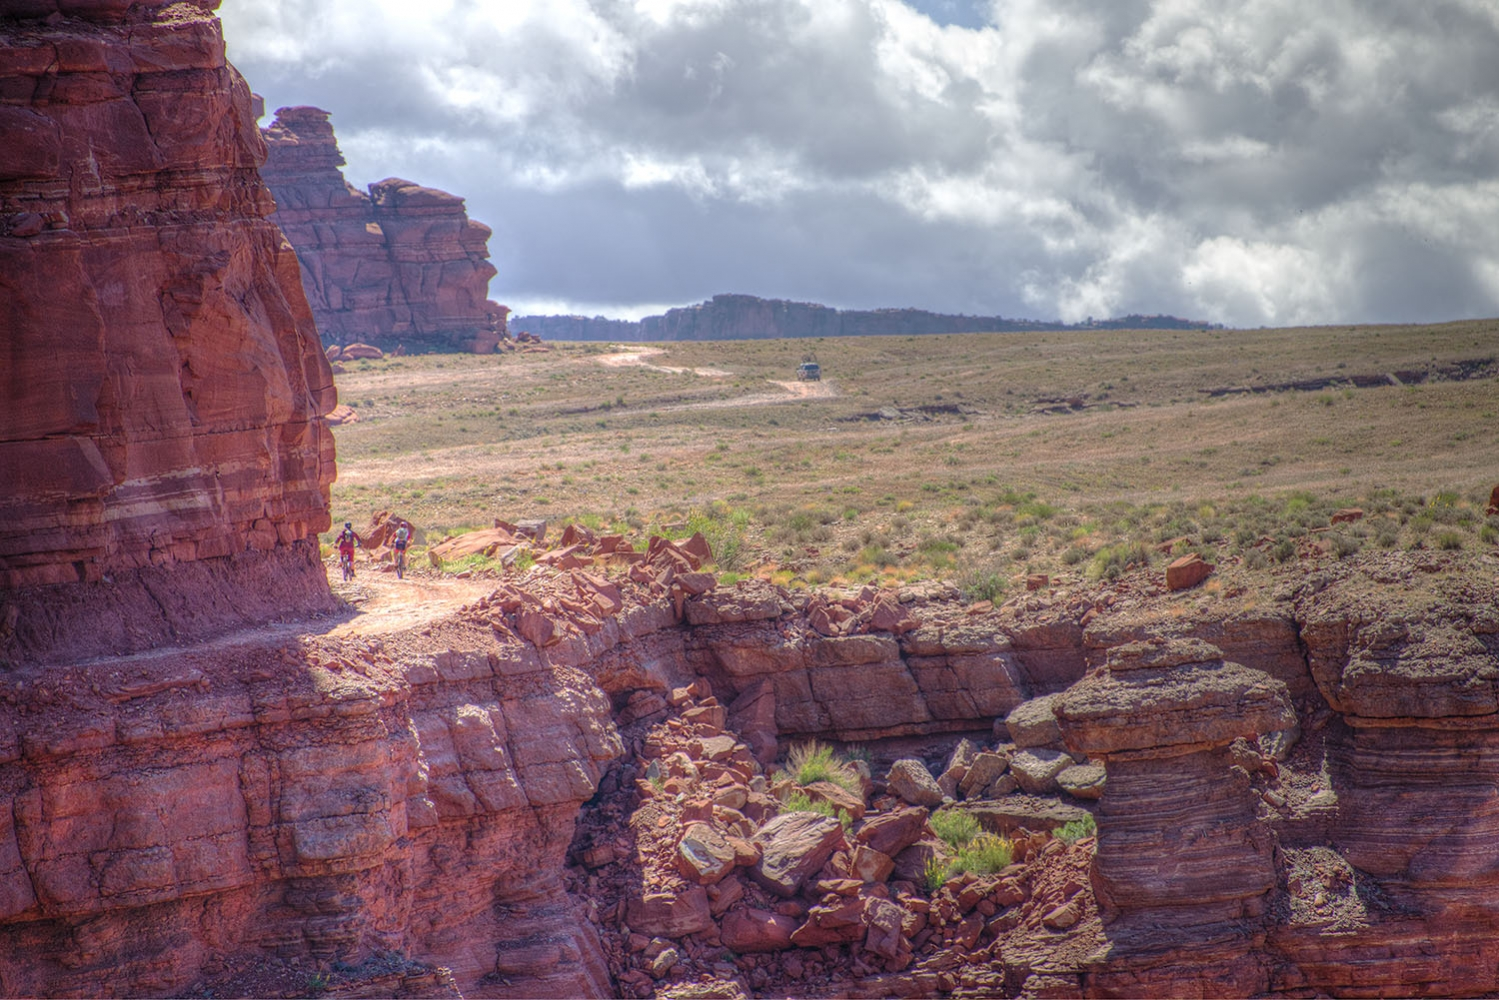 Canyonlands-National-Park-Full-Day-Guided-Mtb-Tour-2-Other-Side-Canyon-1